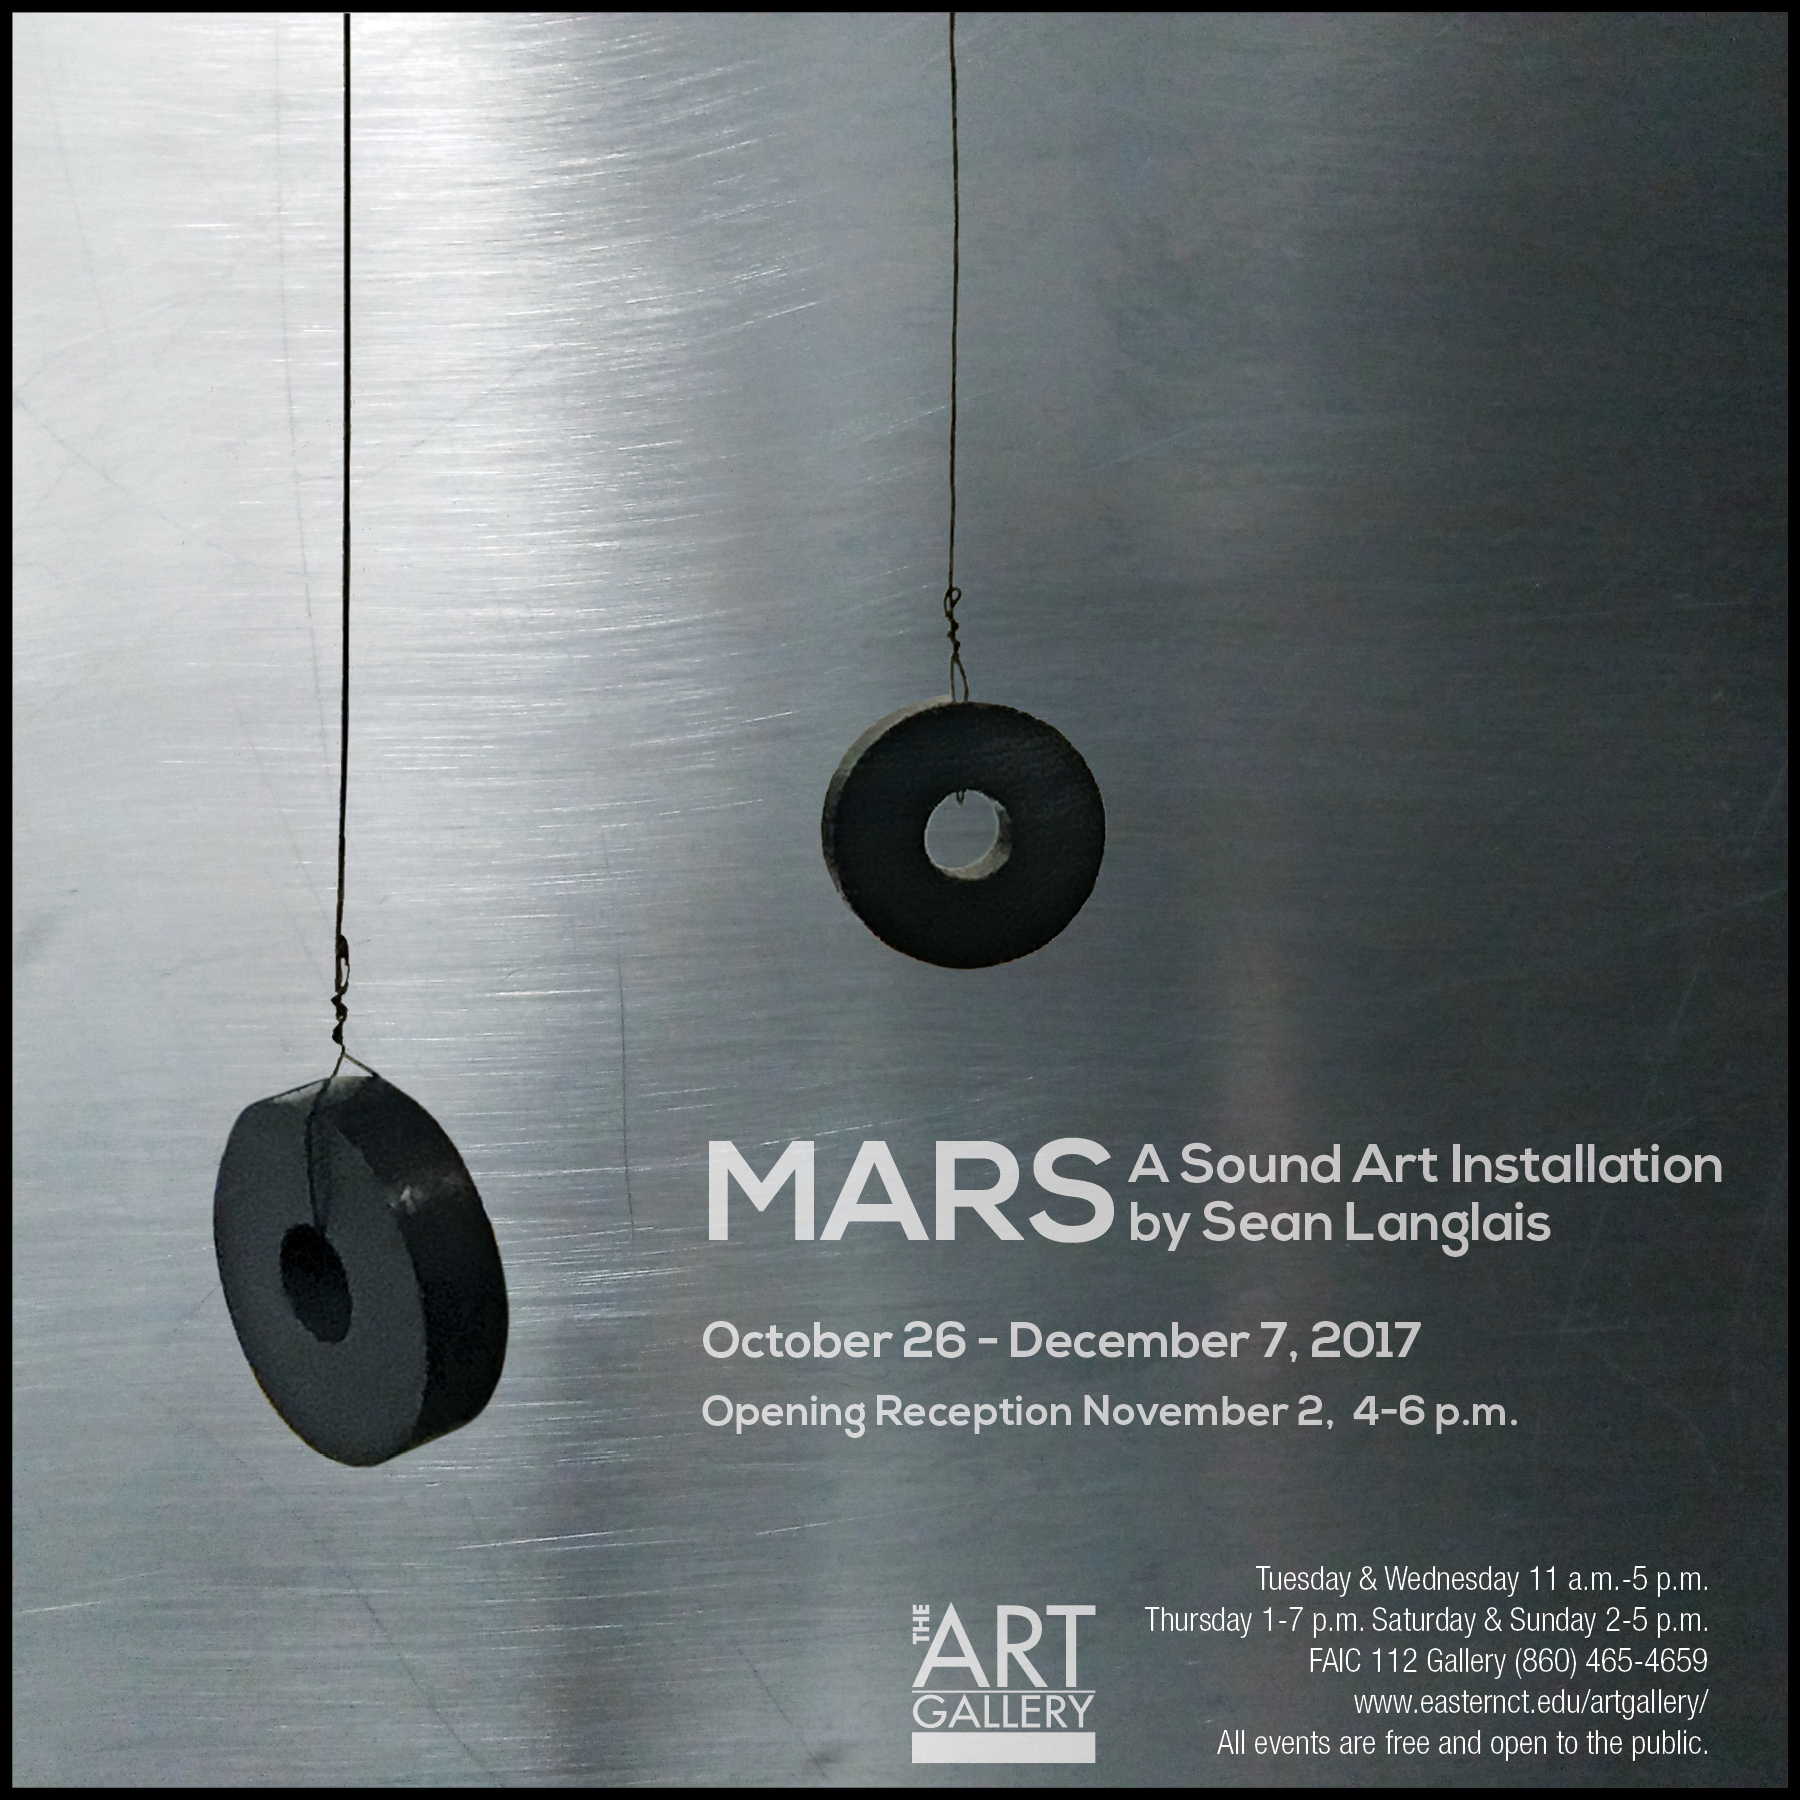 """Written by Casey Collins   While no """"little green Martians"""" in flying saucers will be on display, guests are still in for a surprise when Eastern Connecticut State University hosts contemporary artist Sean Langlais' exhibition, """"Mars: A Sound Art Installation."""" Showing from Oct. 26 to Dec.7 in the Art Gallery of the Fine Arts Instructional Center (FAIC), """"Mars"""" will be the first exhibition of its kind on Eastern's campus. An opening reception will occur Nov. 2 from 4-6 p.m."""